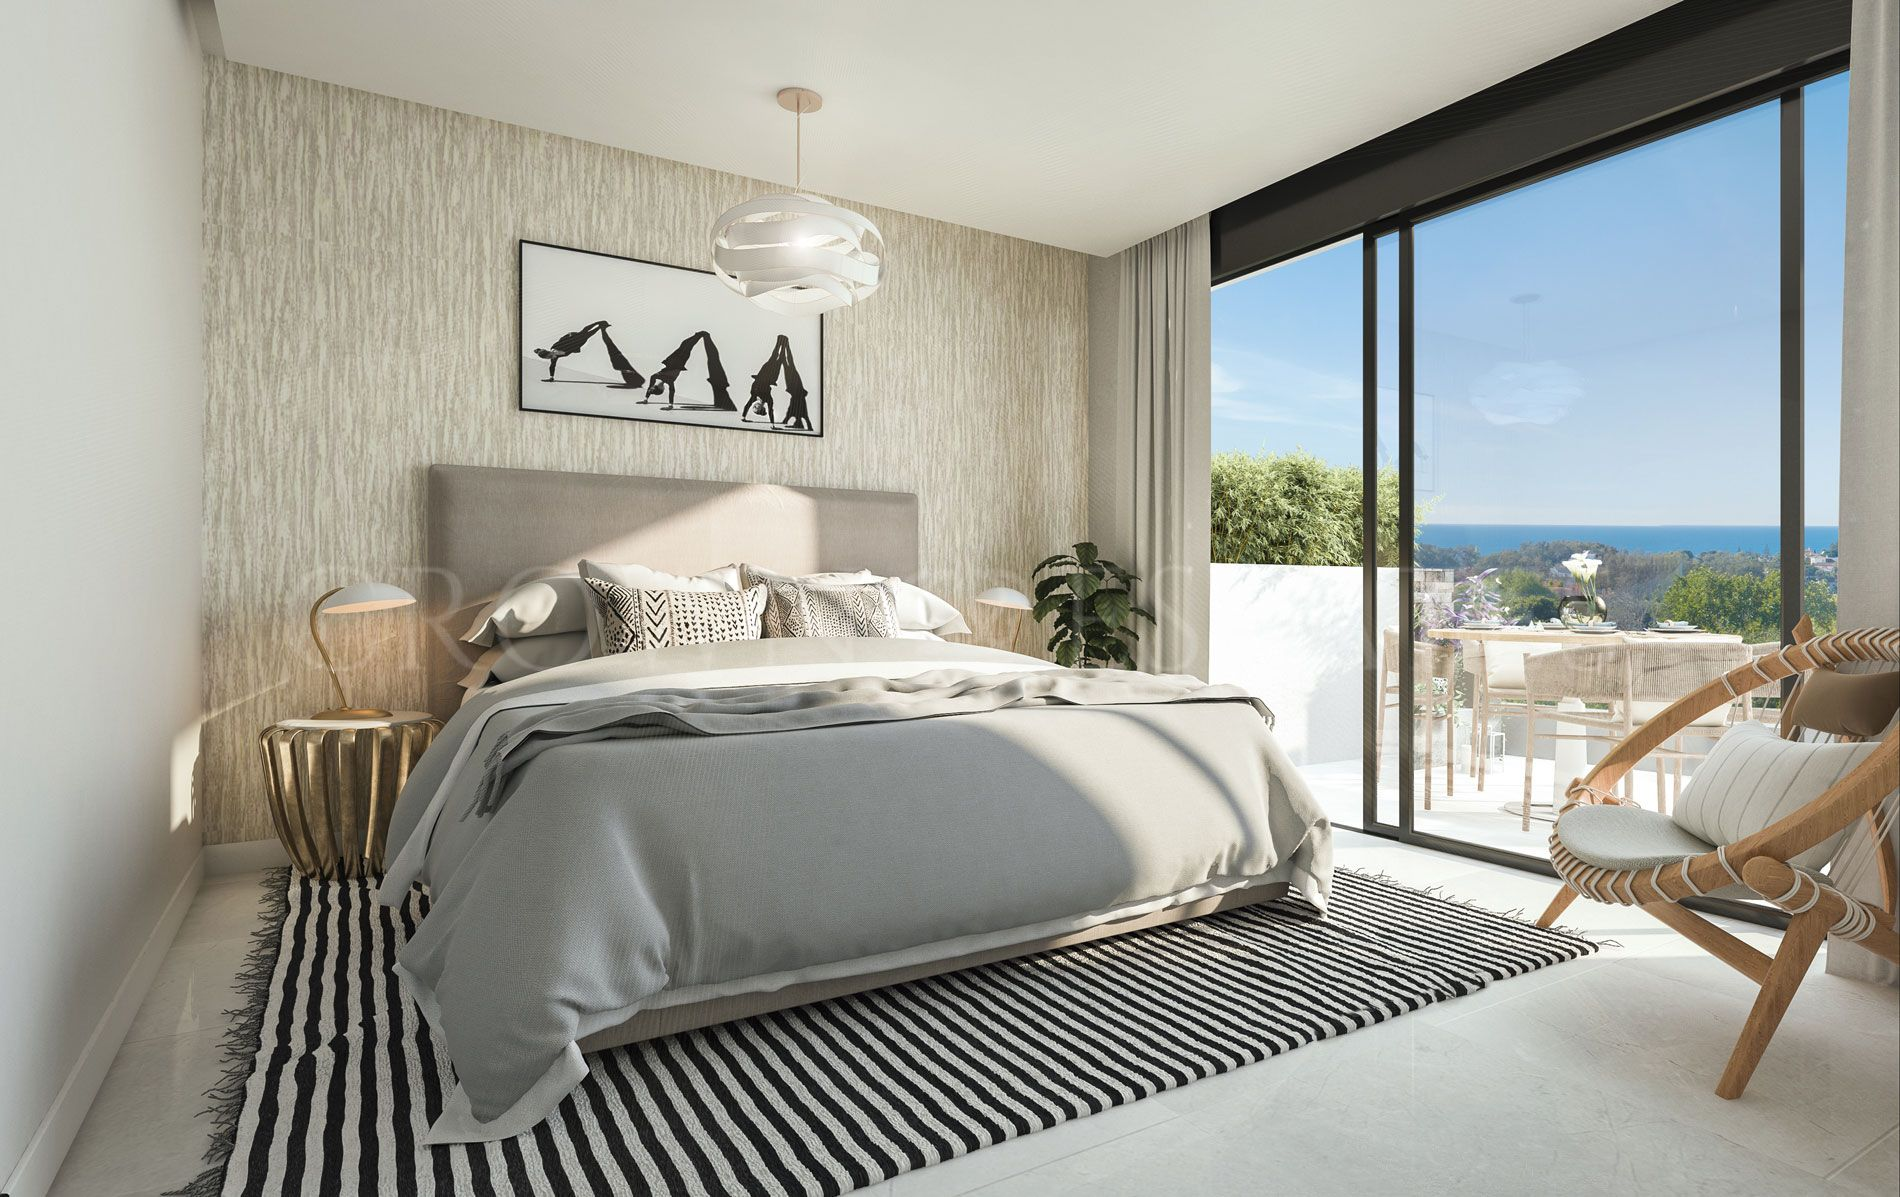 2, 3 and 4 bedrooms apartments on the front line of the Cabopino Golf Coursein Marbella. Designed to offer you all the luxury of a resort inside your ownhome.